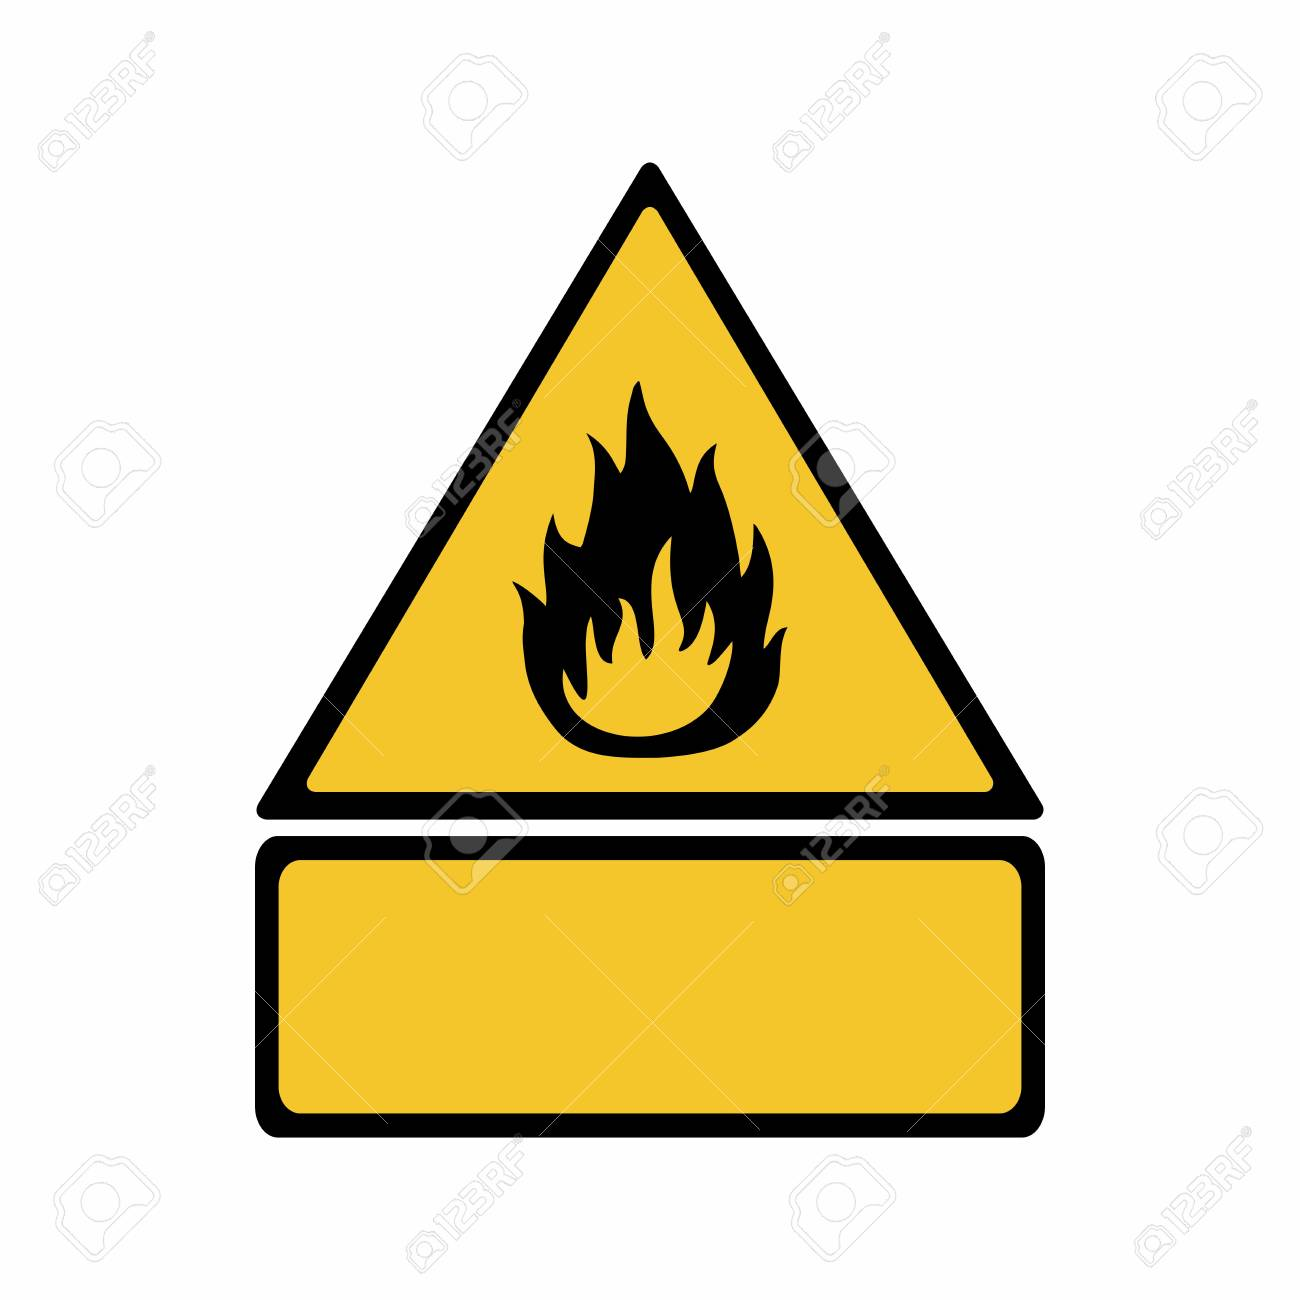 Flammable material sign vector design iso 7010 w021 warning flammable material sign vector design iso 7010 w021 warning symbol stock vector 72368685 biocorpaavc Image collections